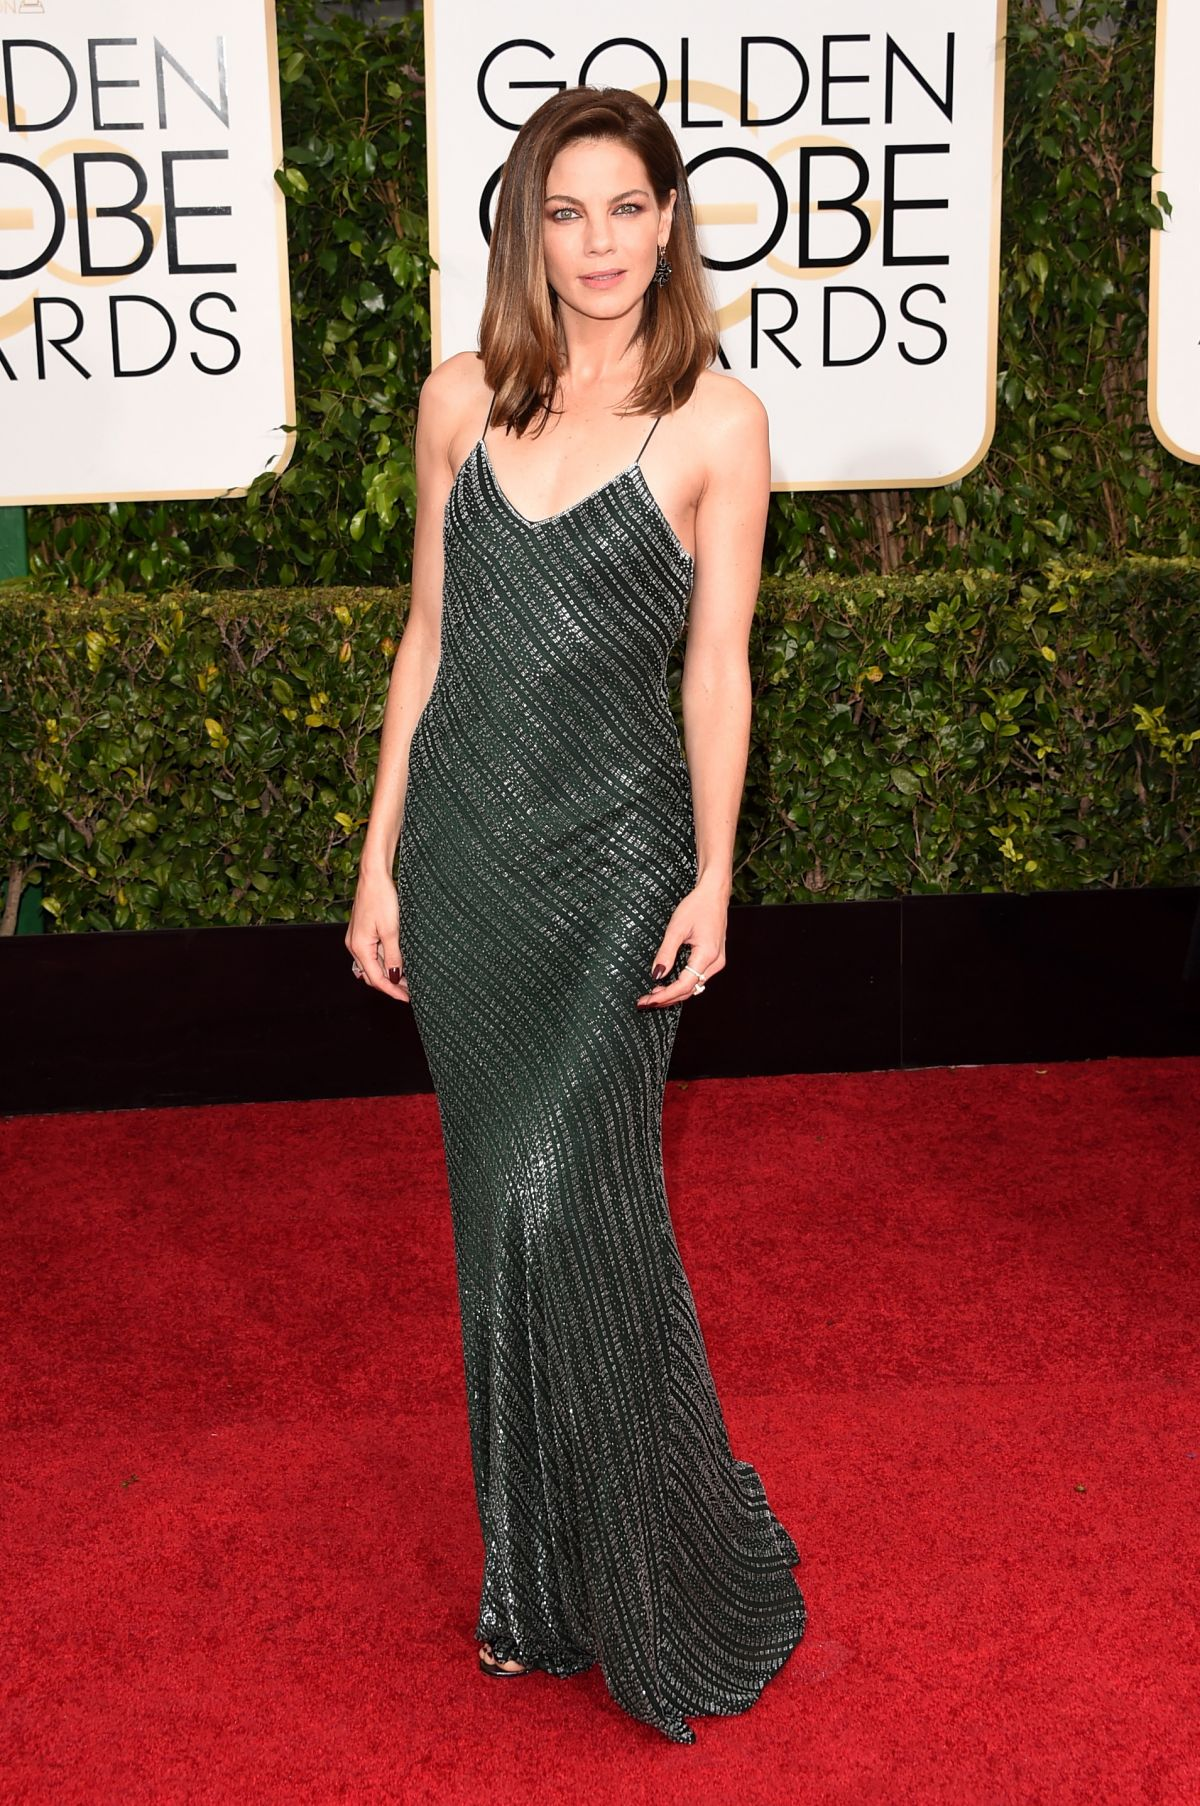 MICHELLE MONAGHAN at 2015 Golden Globe Awards in Beverly Hills